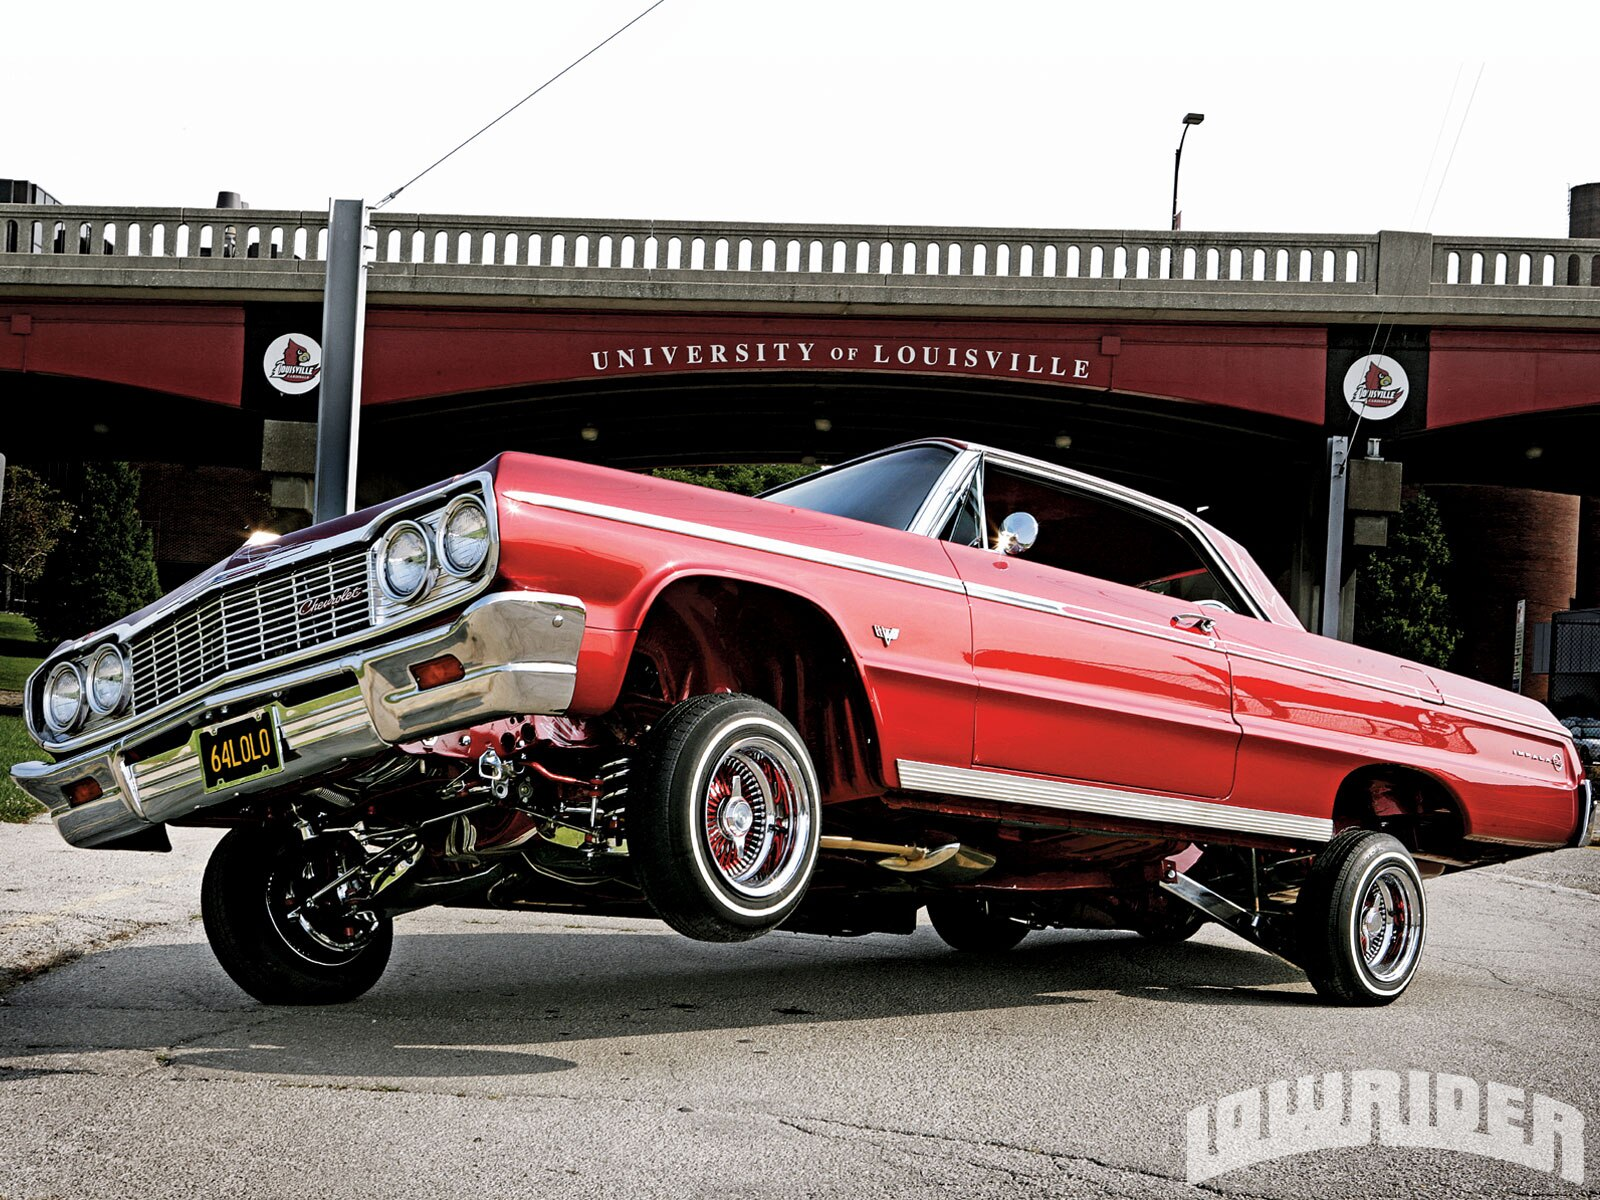 1002_lrmp_02_o-1964_chevrolet_impala-3_wheel_motion2